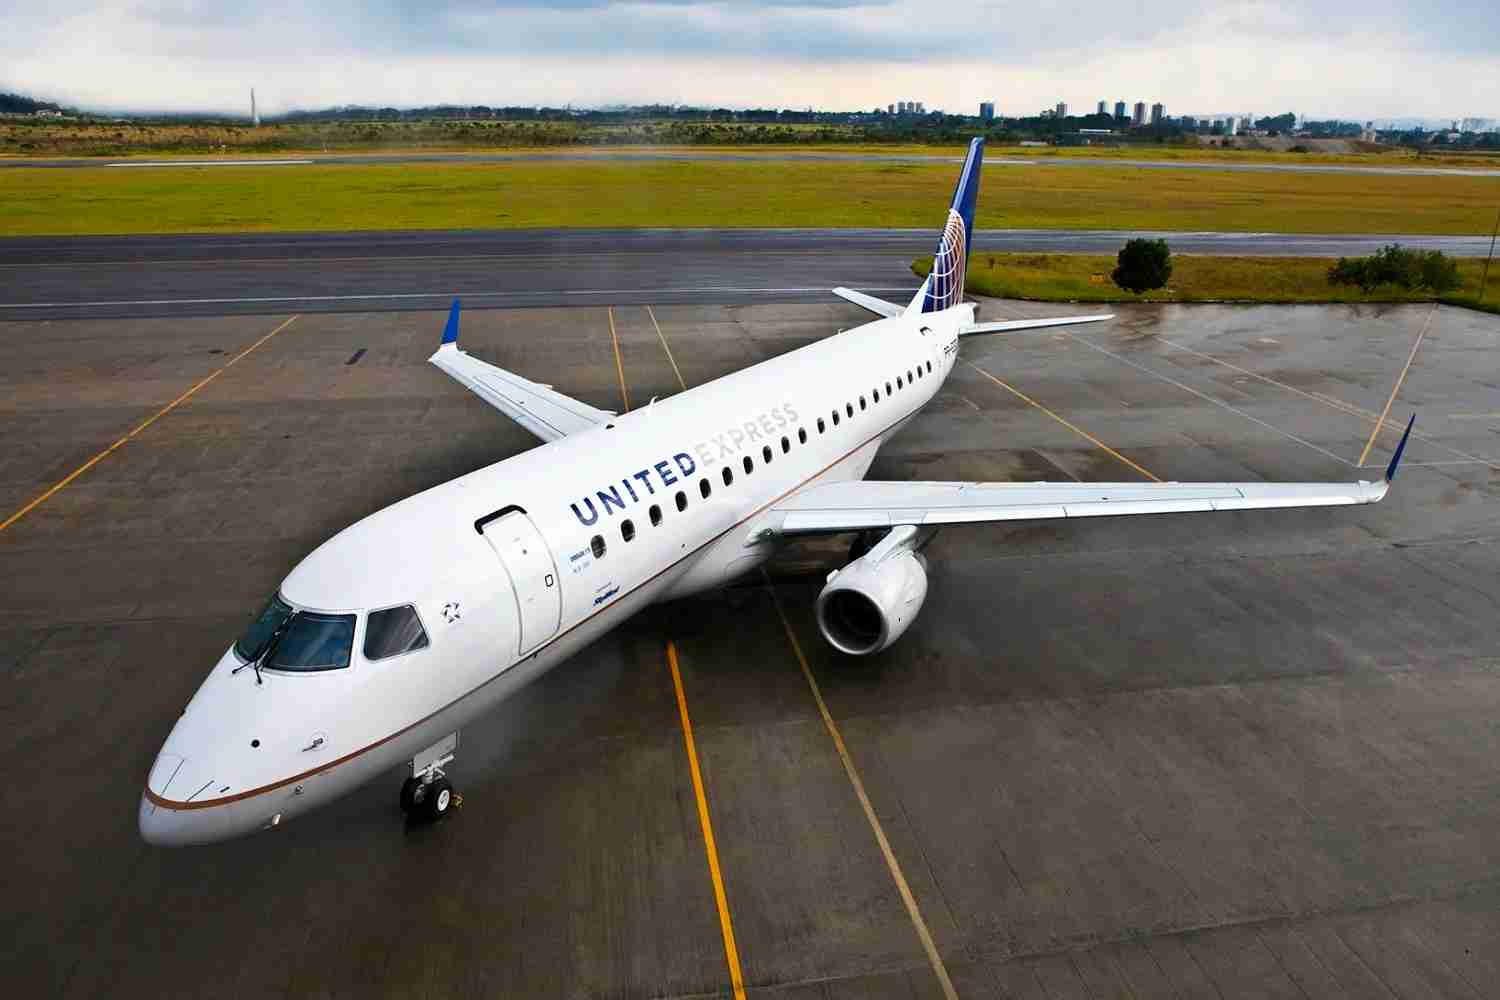 A United Express Embraer E175 (Image Courtesy of United Airlines)